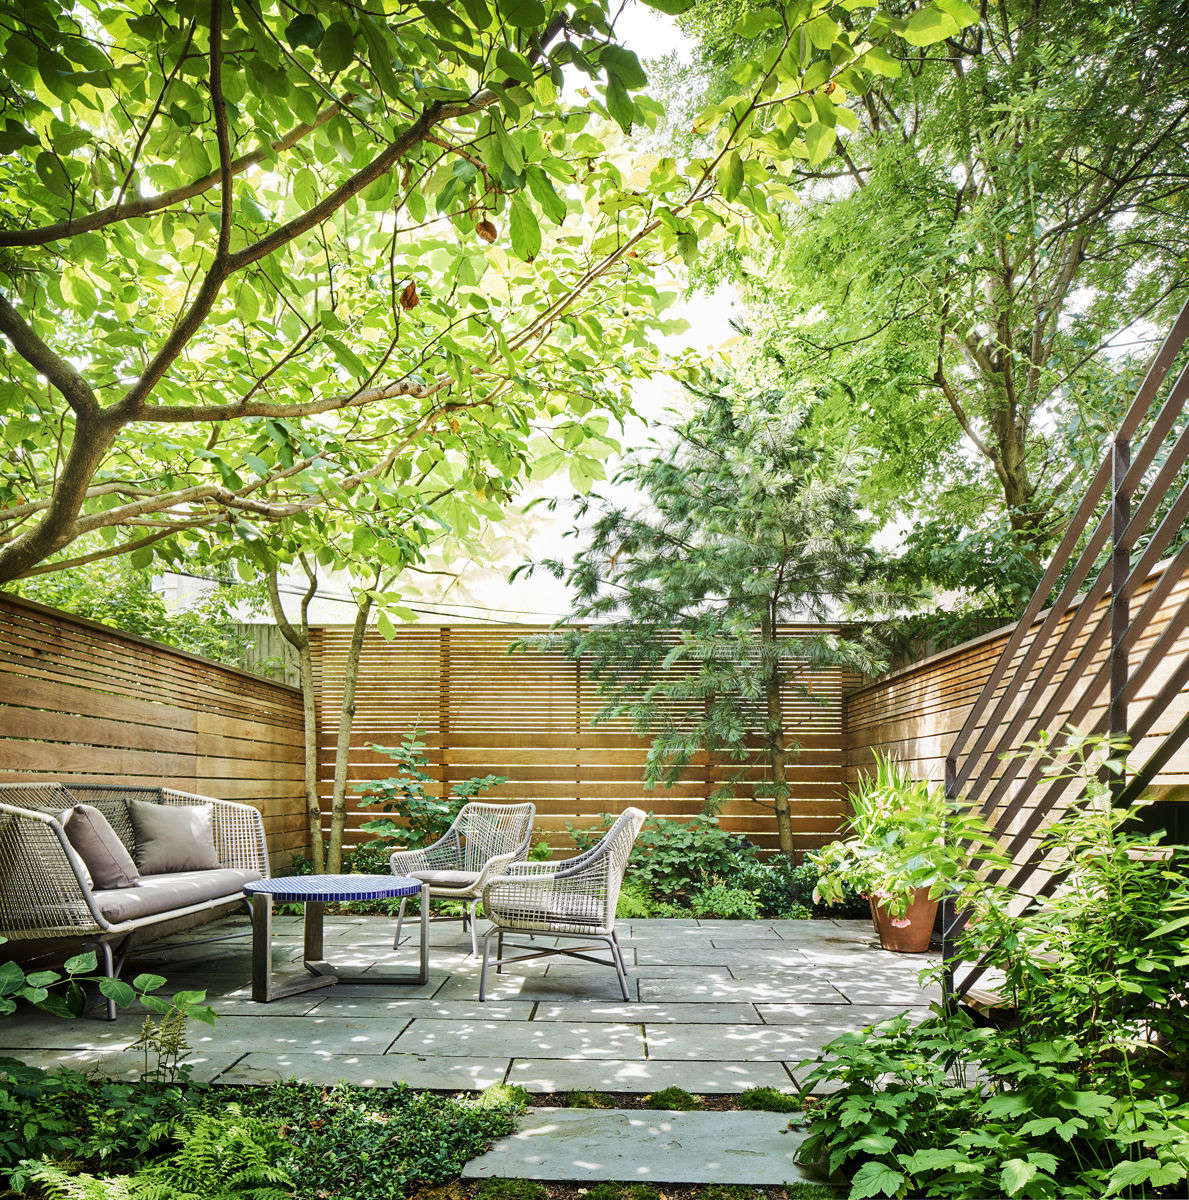 Landscape Architect Visit: A Leafy Garden In Park Slope In